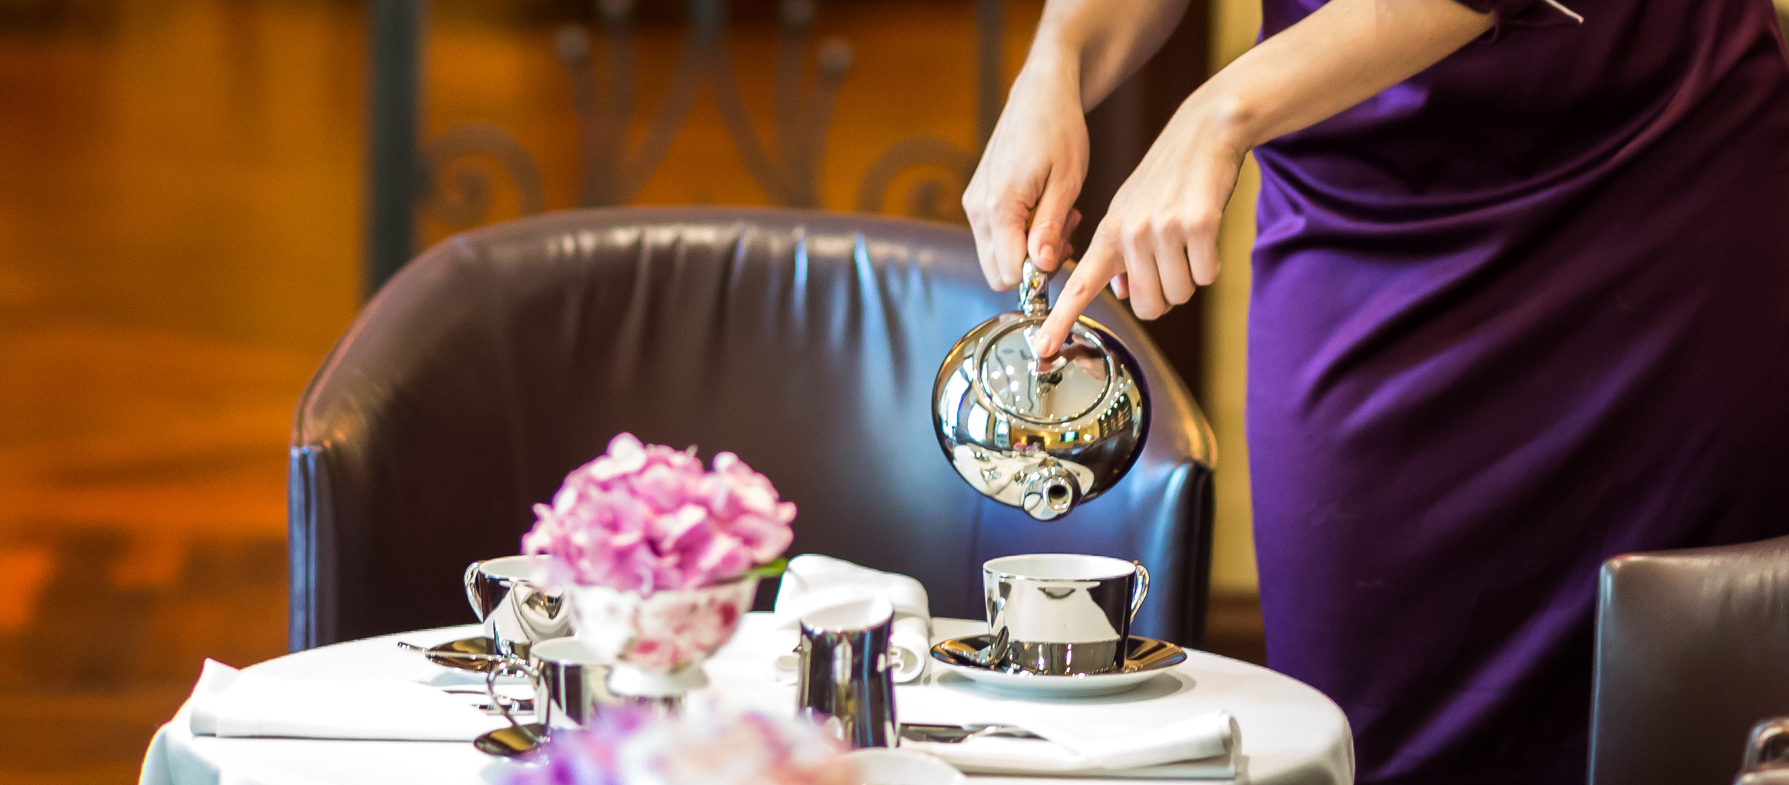 Afternoon Tea Time @ Corinthia Hotel Budapest